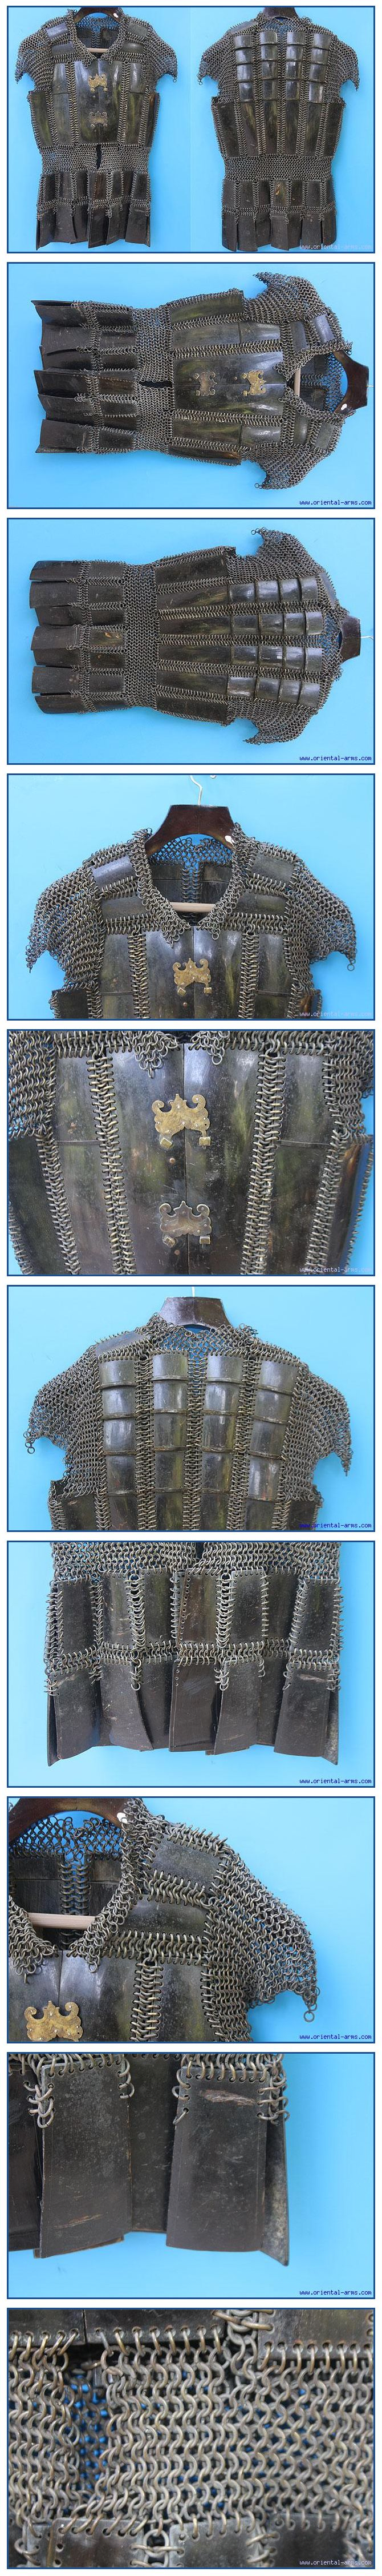 Moro mail and plate armor (kurab-a-kulang) from the Philippines, mid to late 19 century, the armor is constructed from black water buffalo horn plates connected with butted brass mail, with two brass buckles on the chest plates. 26 inches high 18 inches wide, 6.9 Kg. total weight.